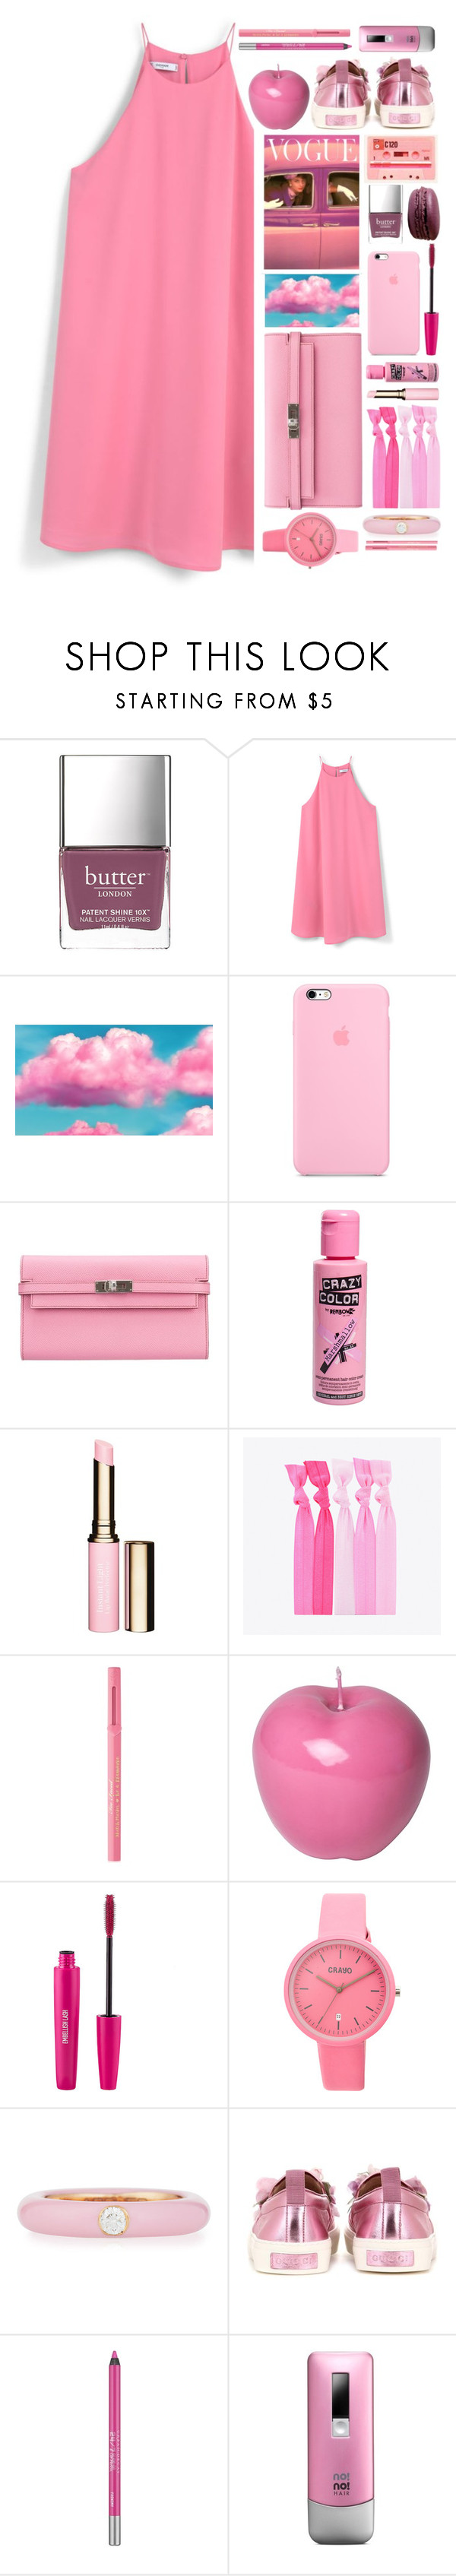 """Who you callin' princess?"" by brynhawbaker ❤ liked on Polyvore featuring Butter London, MANGO, Hermès, Clarins, Popband, Too Faced Cosmetics, Bitossi, Crayo, Adolfo Courrier and Gucci"